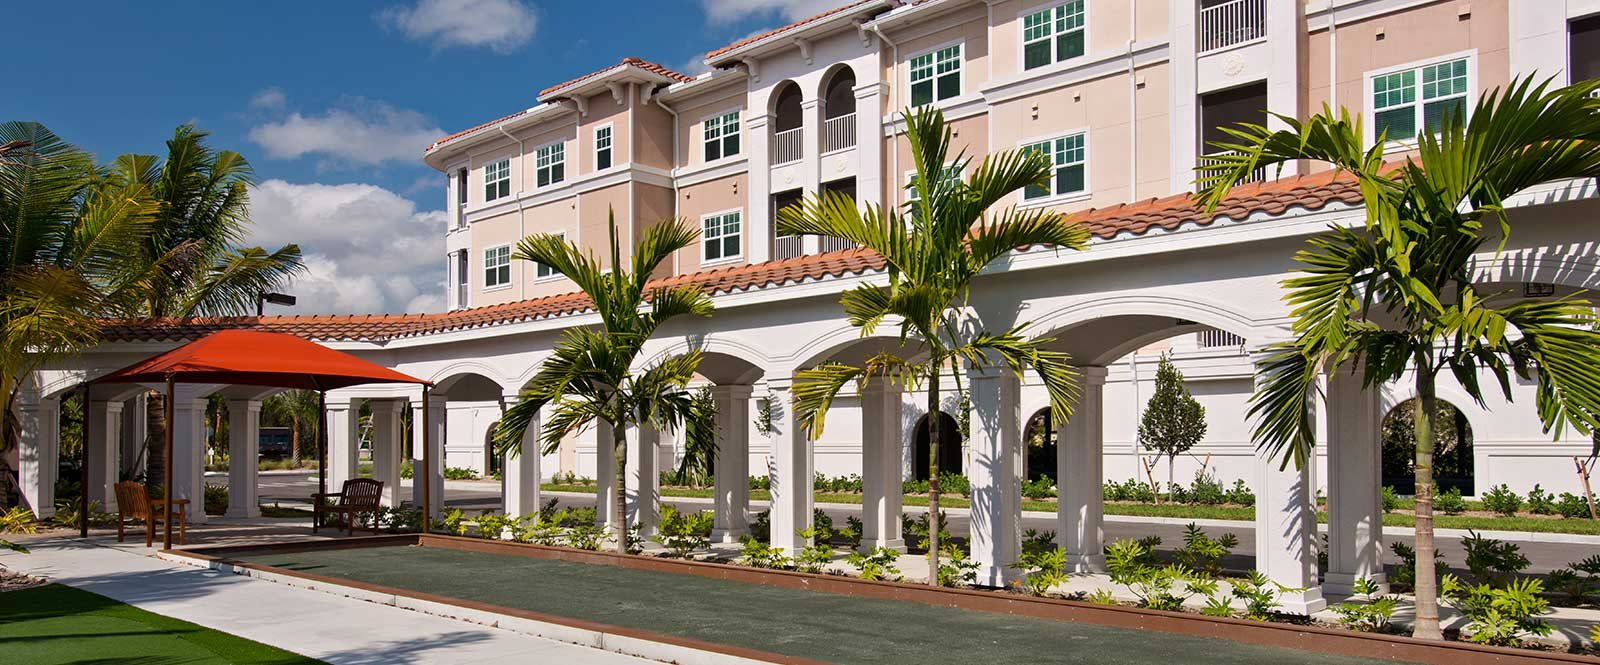 Diamond Oaks Village Apartments In Bonita Springs Fl